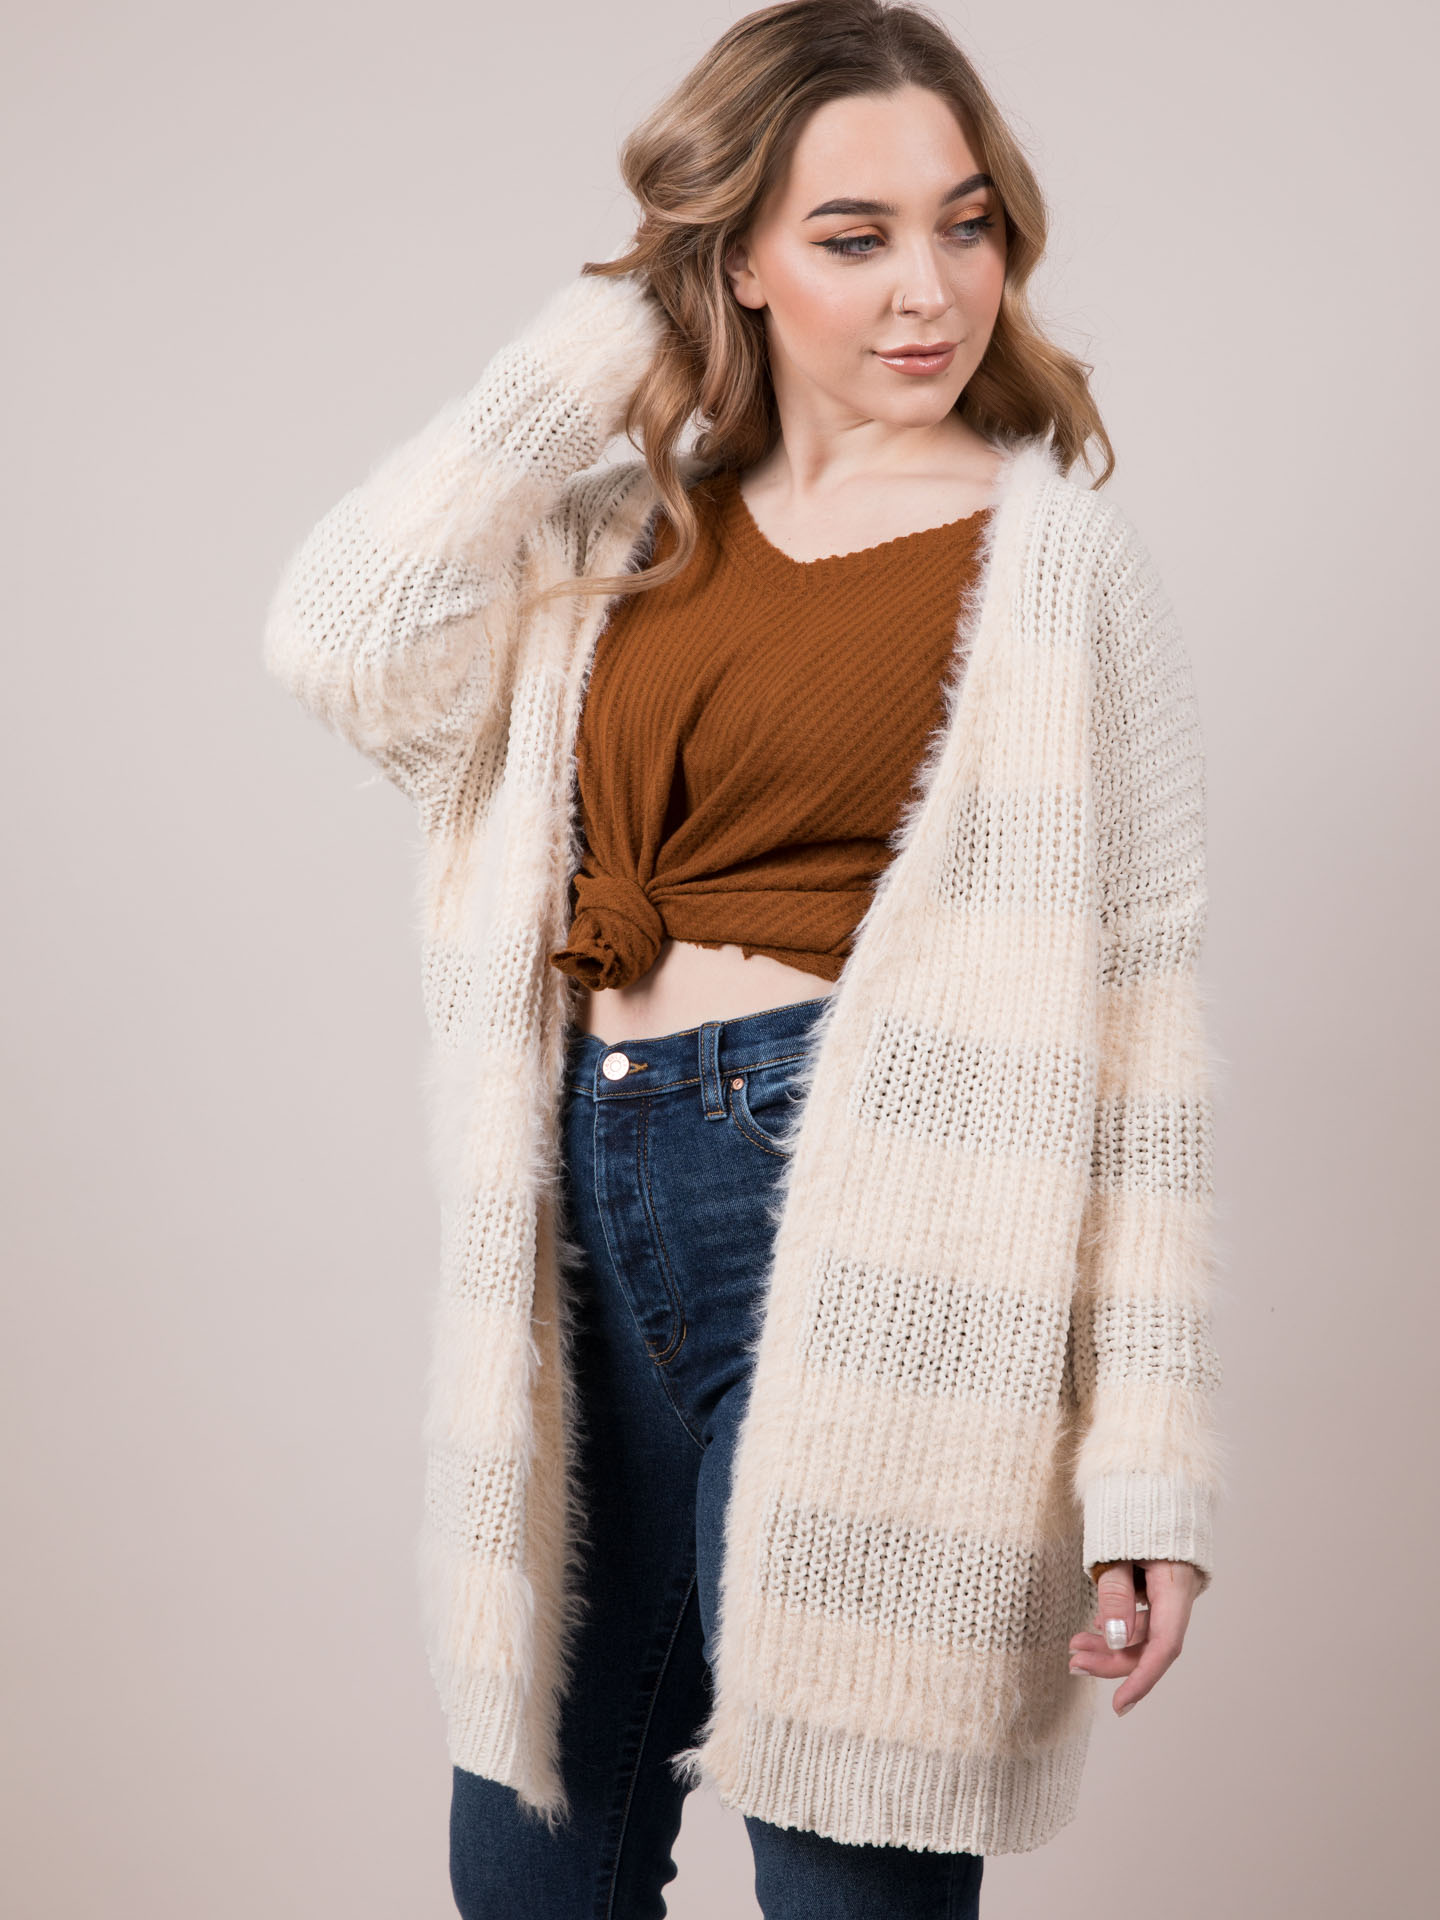 Below Zero Cardigan Fuzzy Knit Long Layer